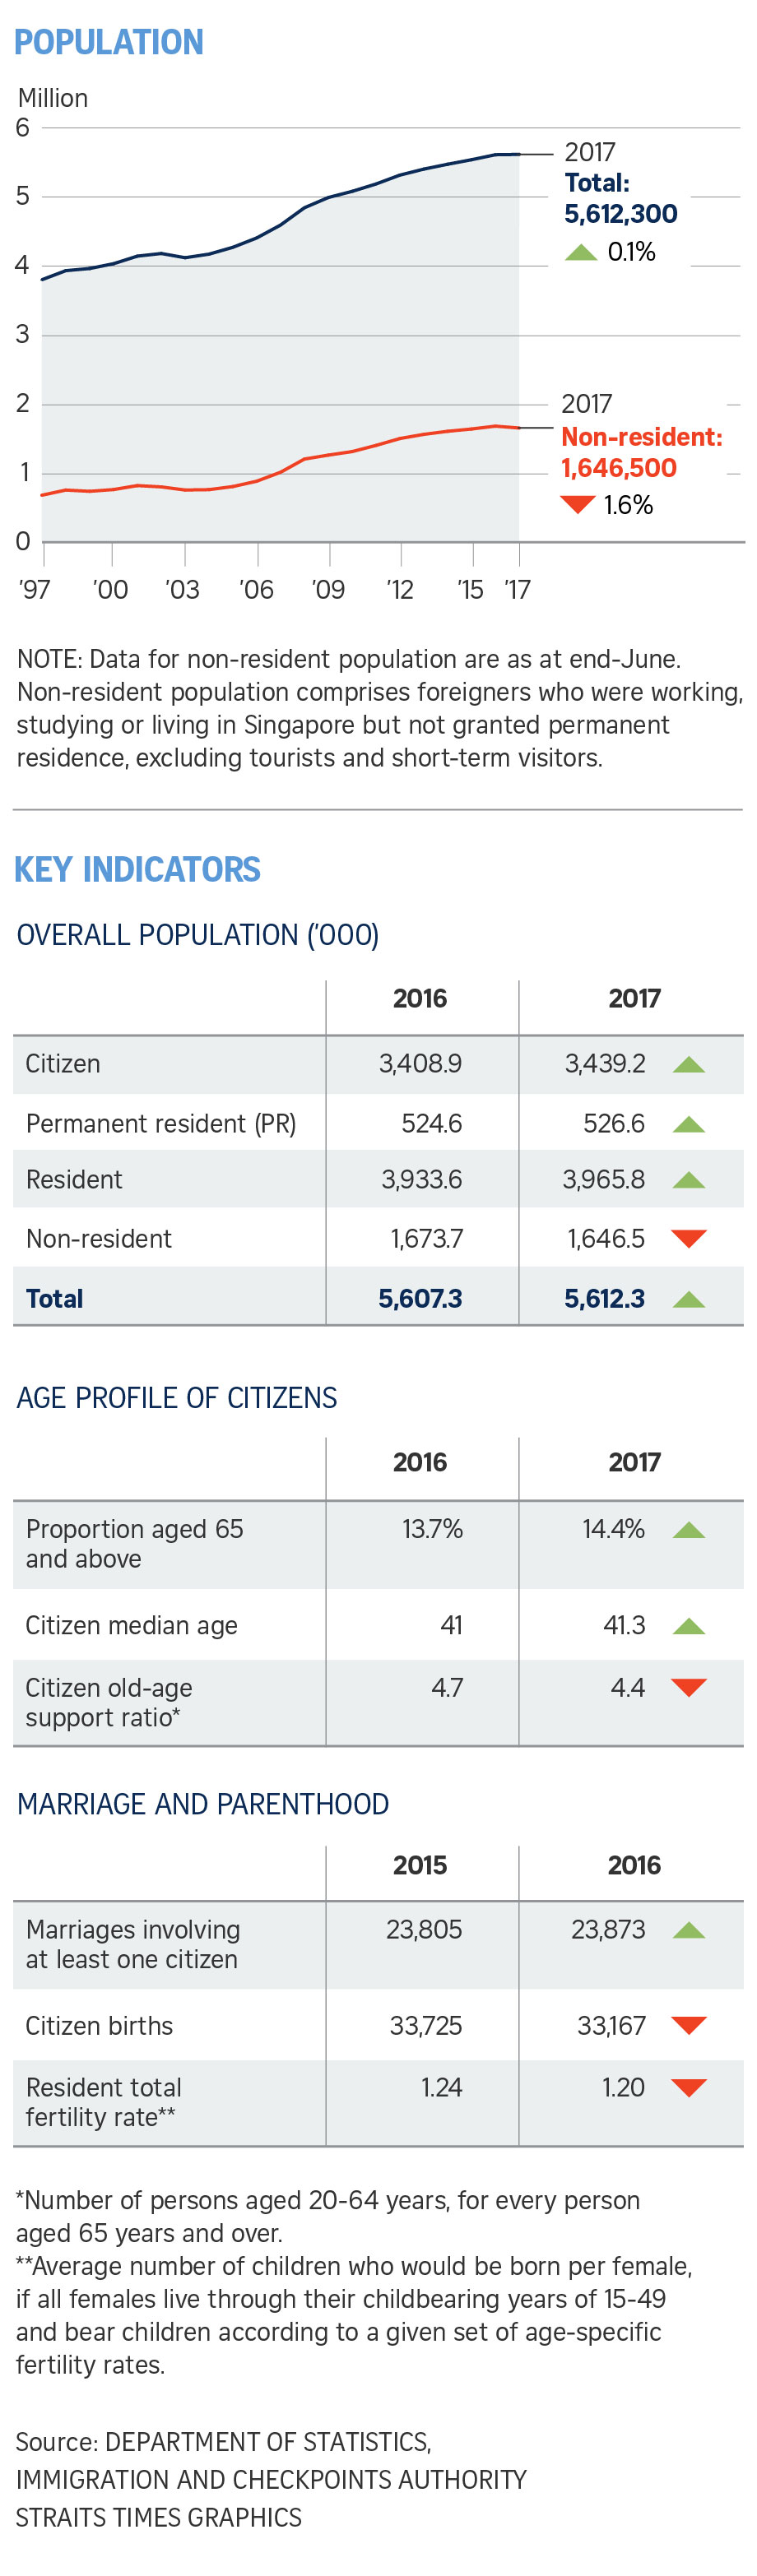 New citizens accounted for 69% of the citizens' growth...